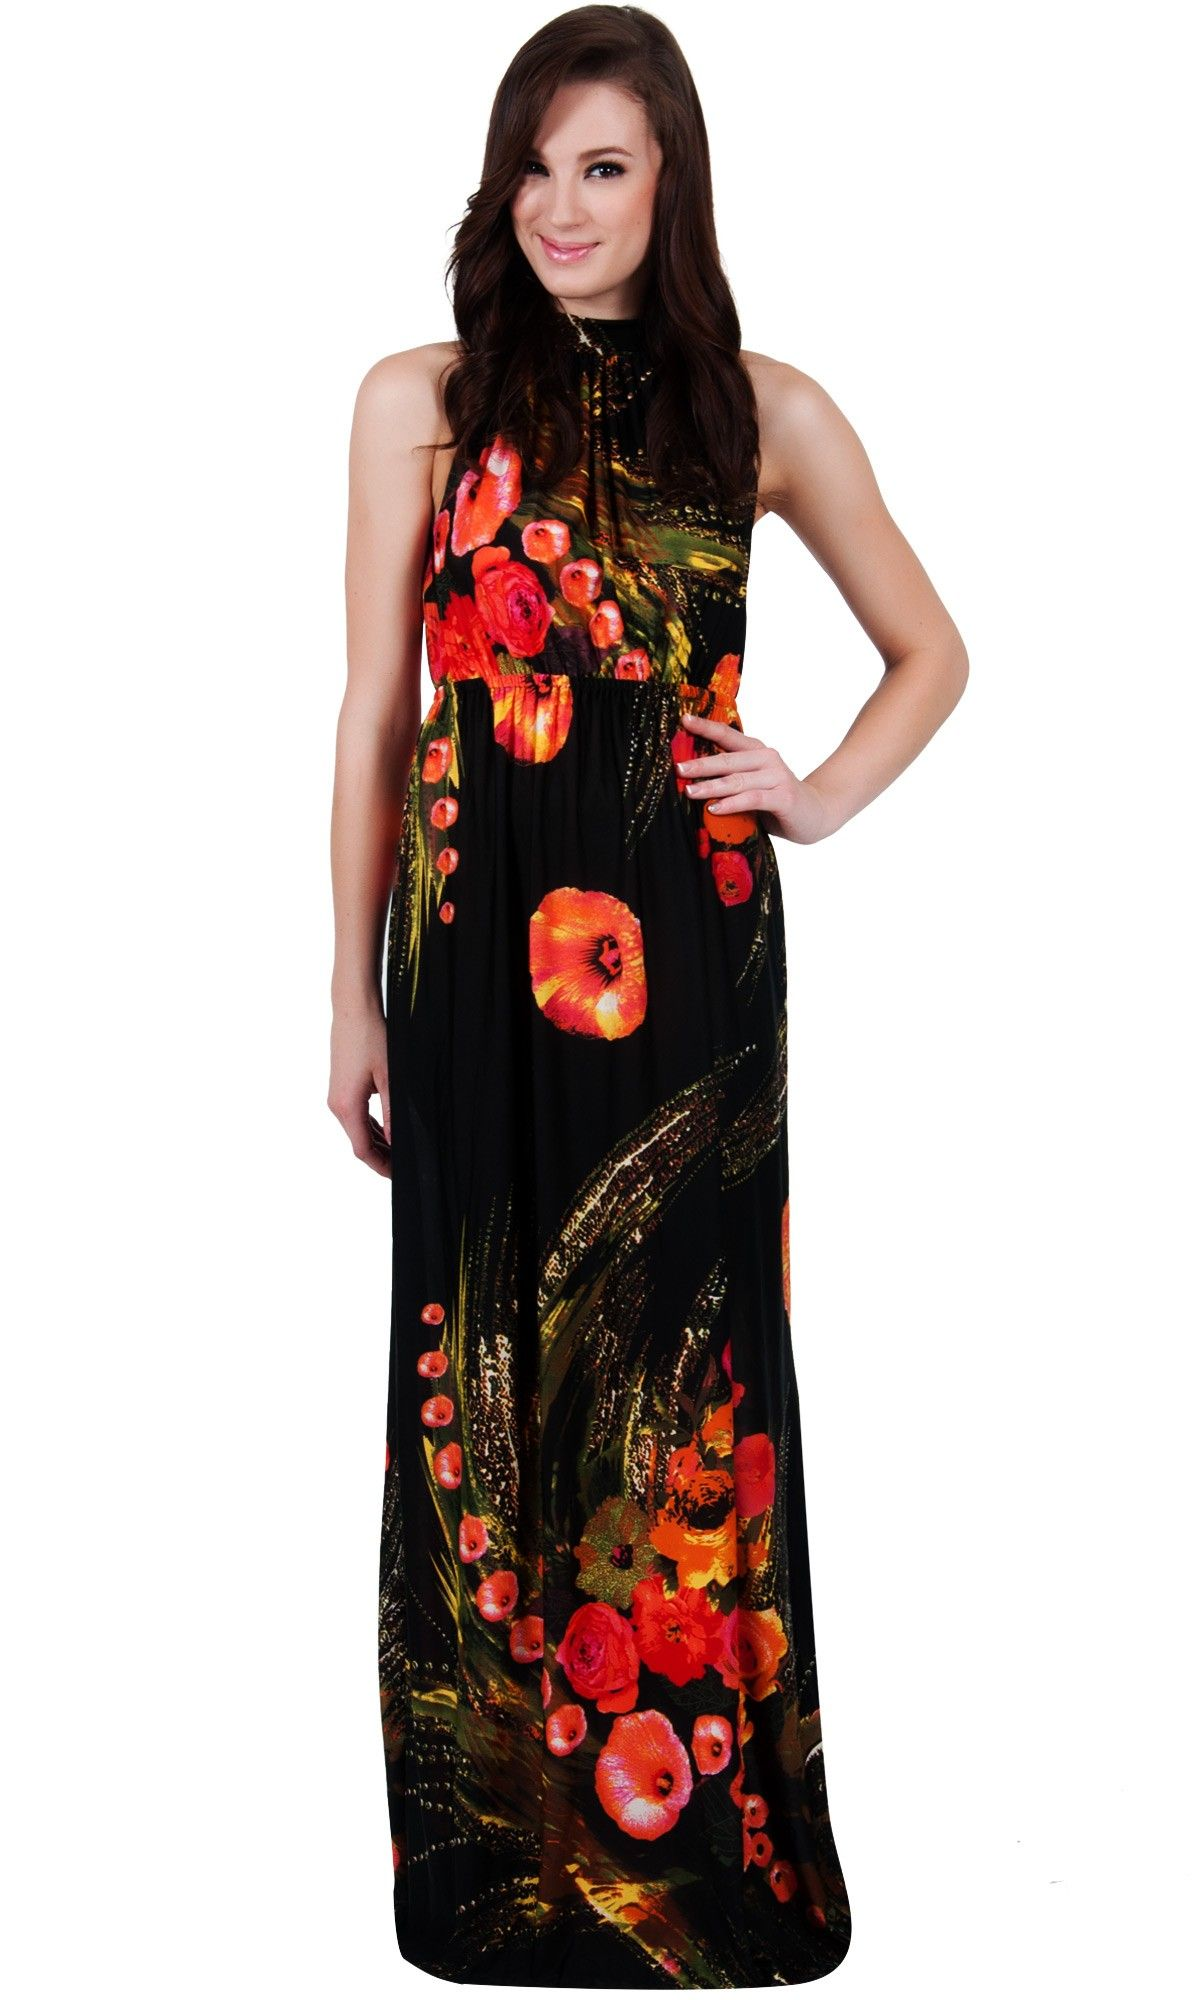 8fc510cadf4 Long maxi dresses in our GCG range with sizing available from 8-10 to  26-28. Available for order at www.maxidressheaven.com  Long  Maxidress   Current  Women ...